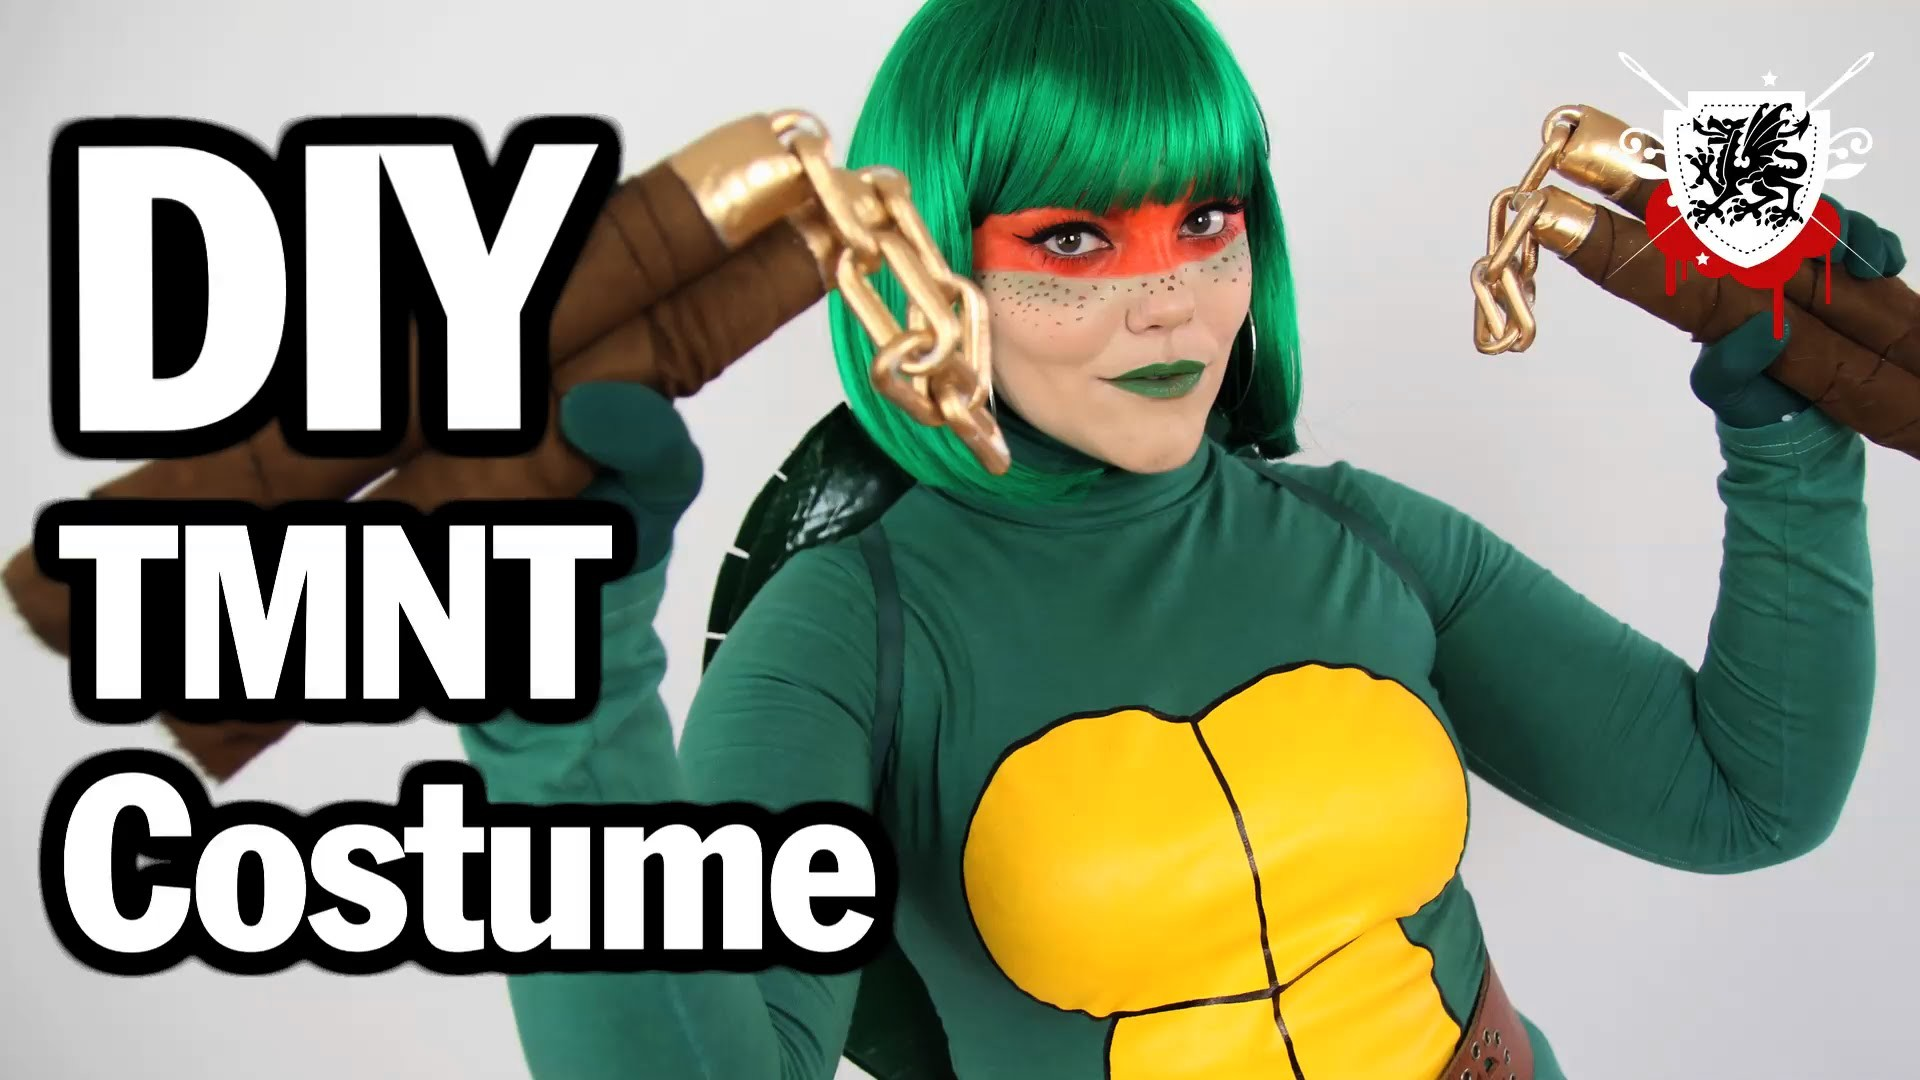 DIY TMNT Costume, ThreadBanger Cosplay